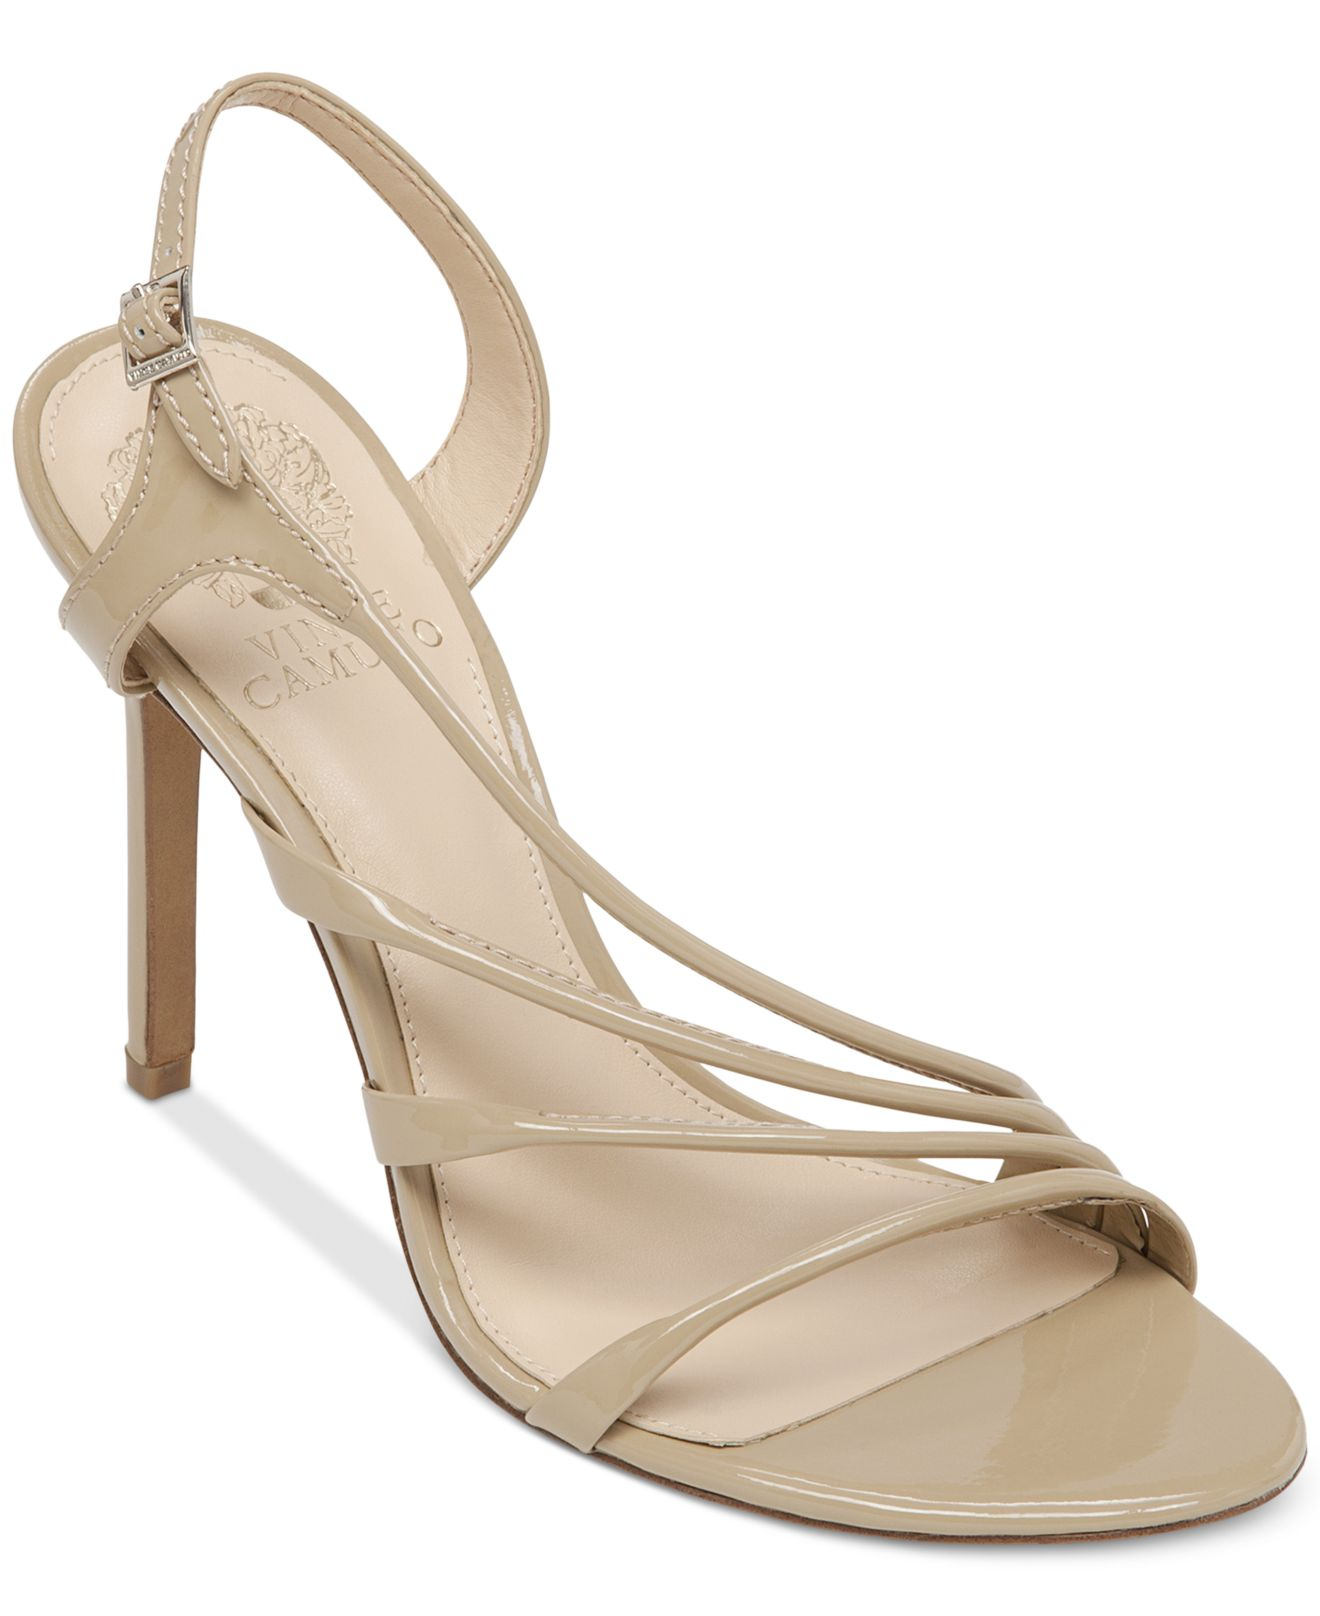 Lyst - Vince camuto Tiernan Asymmetrical Evening Sandals in Natural